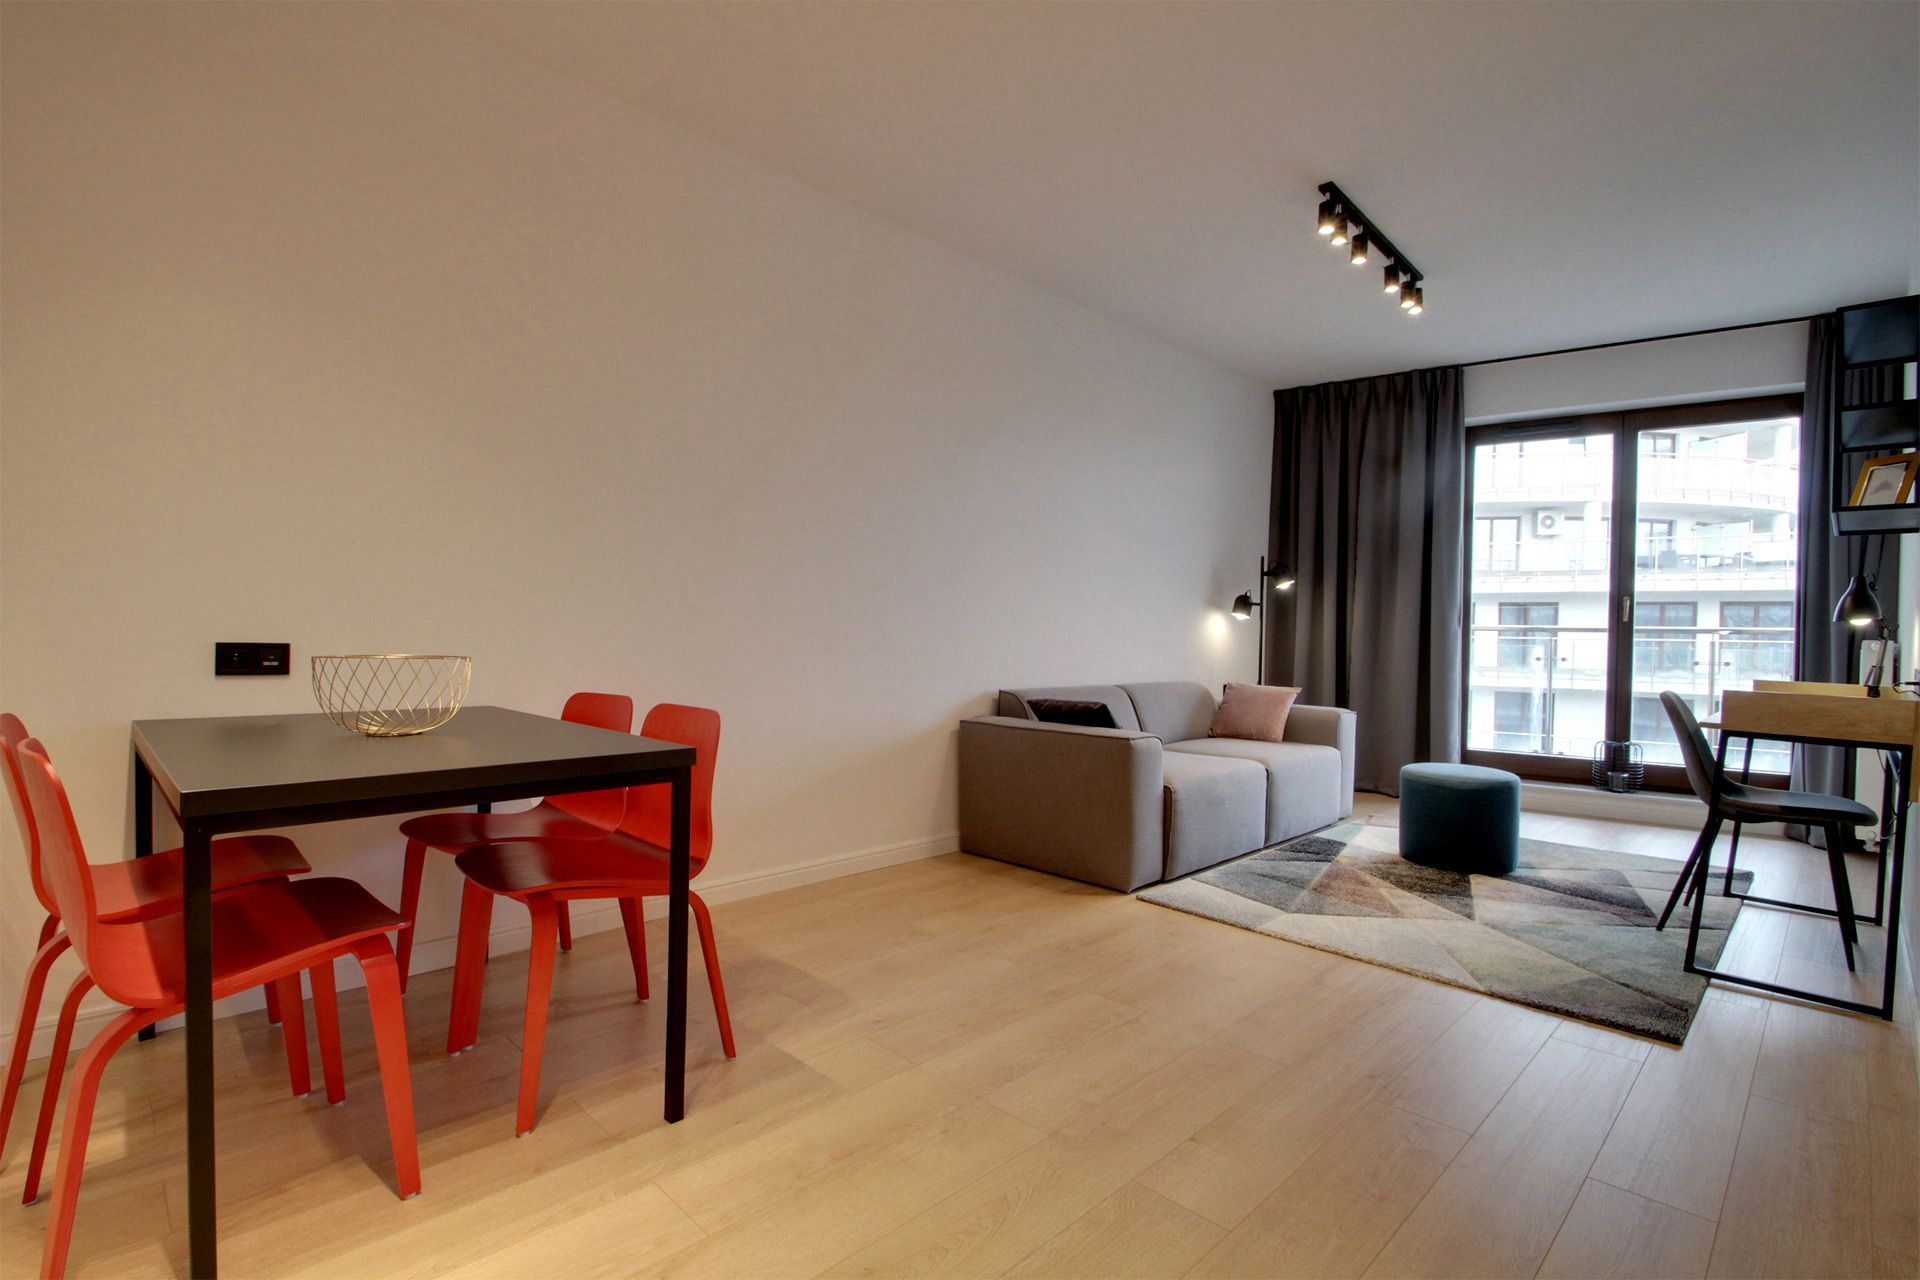 2 Bedroom - Large apartment to rent in Warsaw UPR-A-041-2